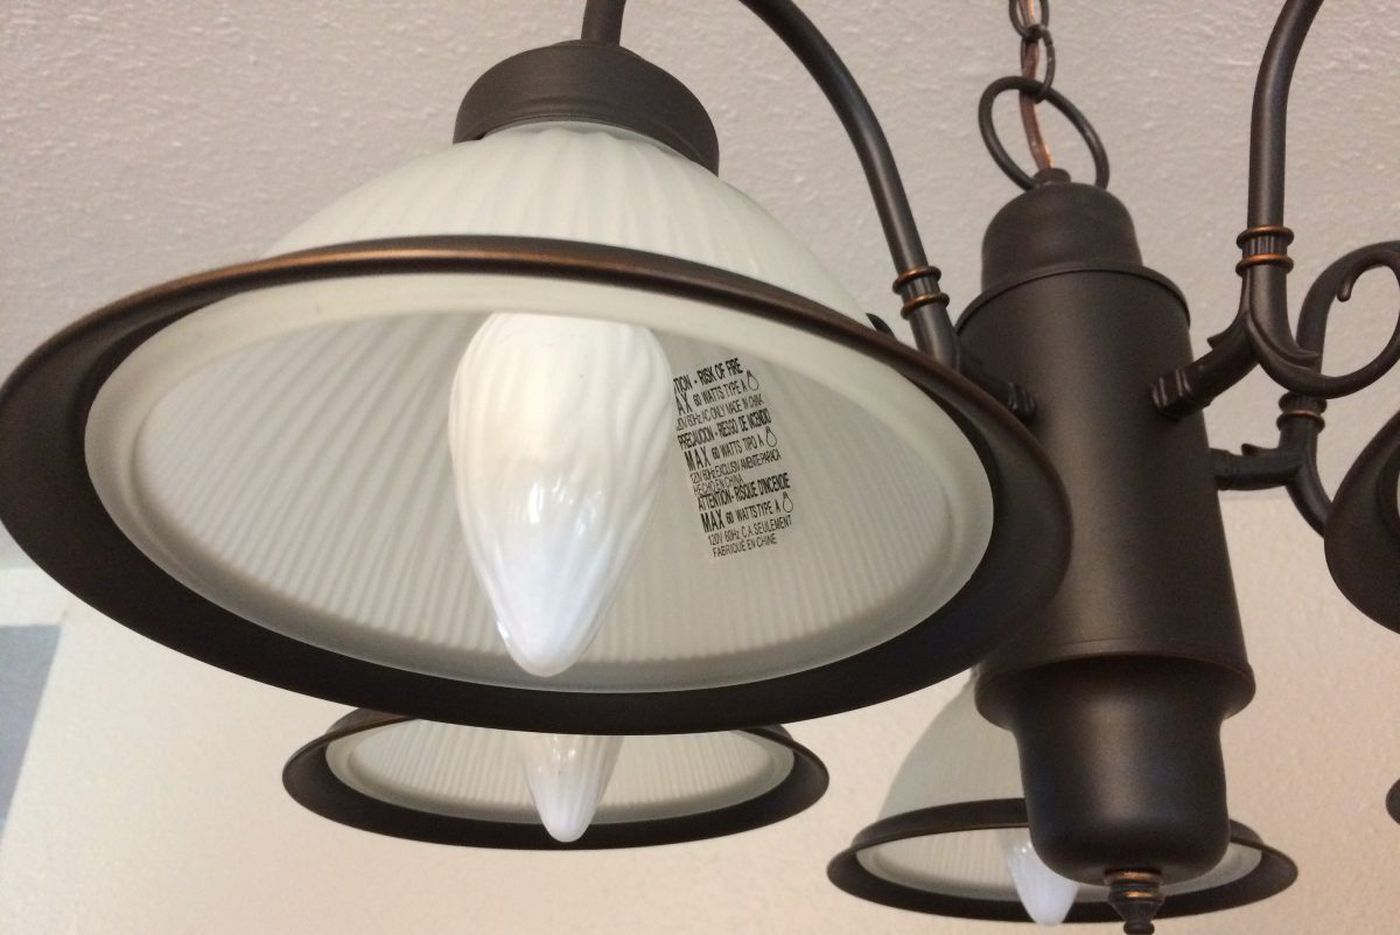 AskJenniferAdams:Is it OK to remove the manufacturer stickers from light fixtures?